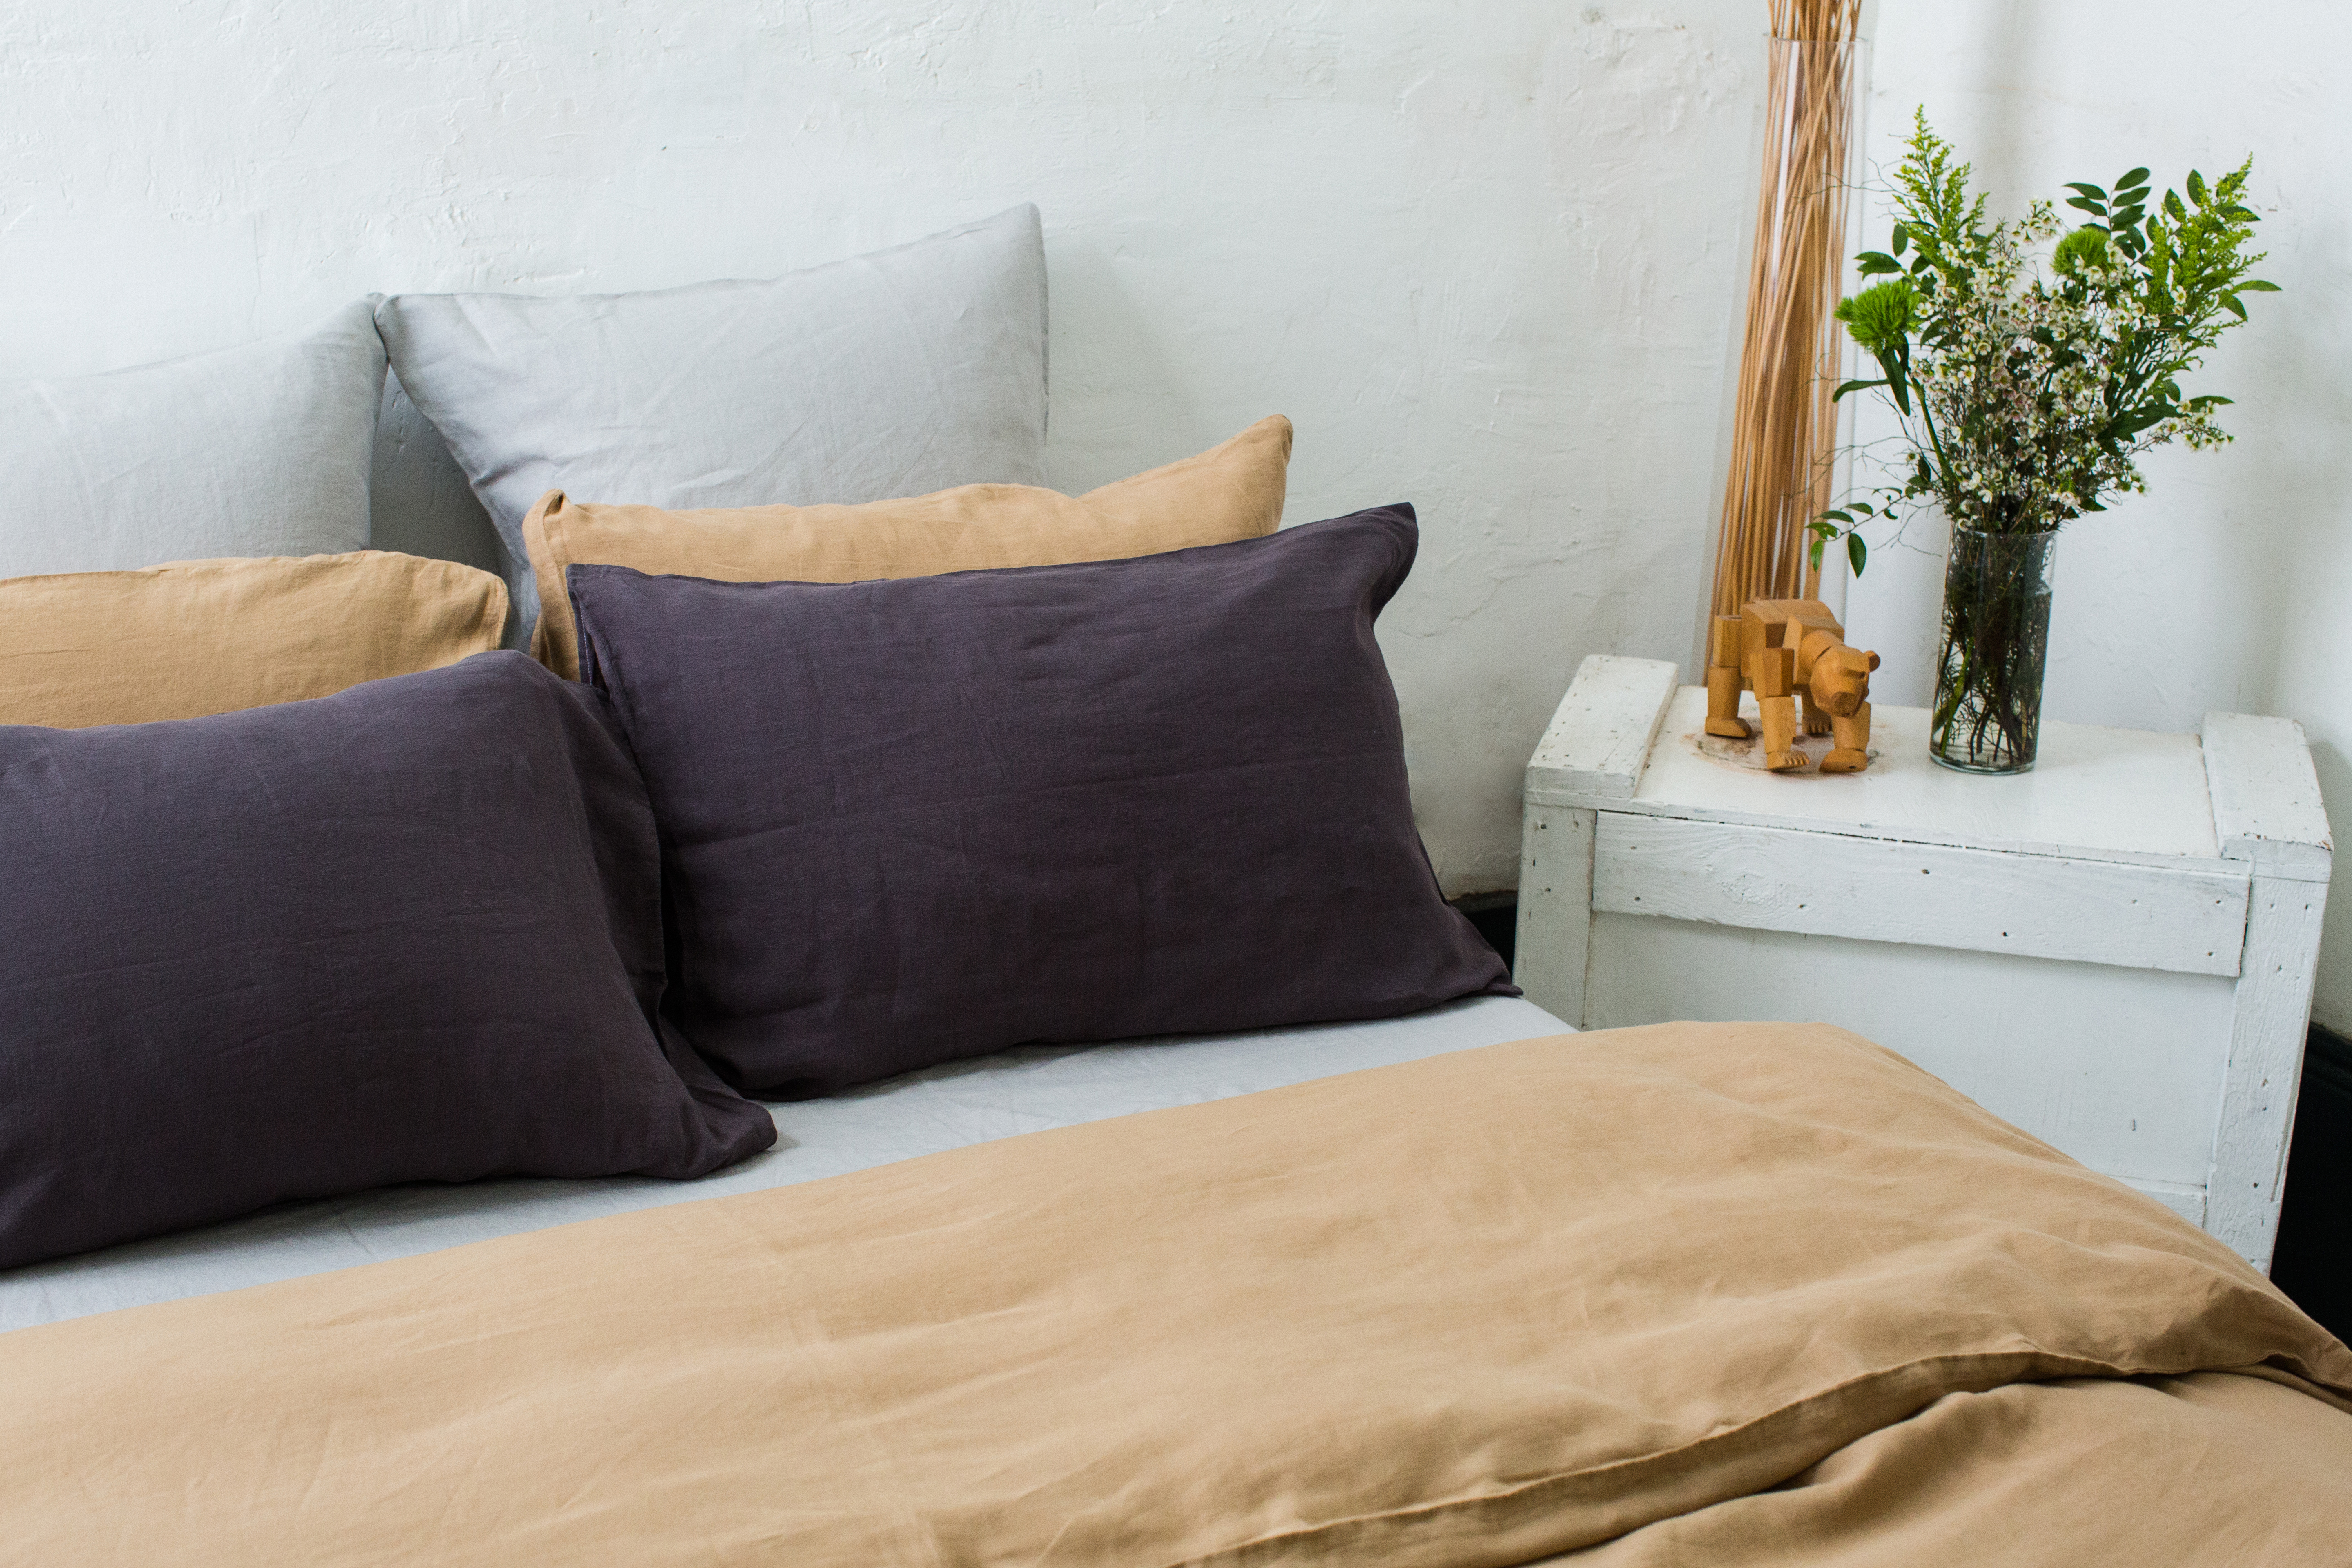 matteo's ecofriendly bedding now comes in color  racked la - matteo's ecofriendly bedding now comes in color